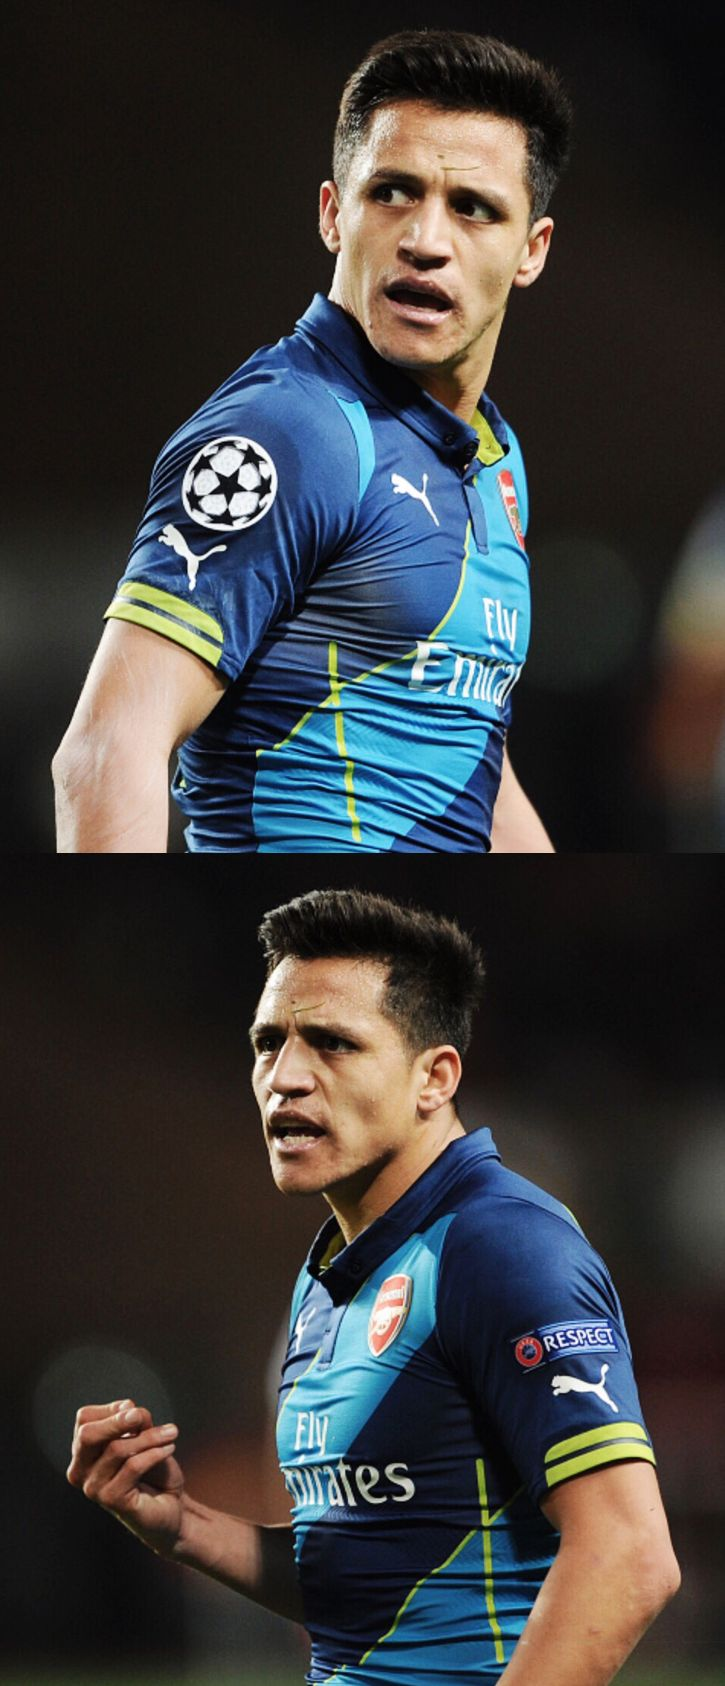 Alexis Sanchez. Even when he is mad he looks great.